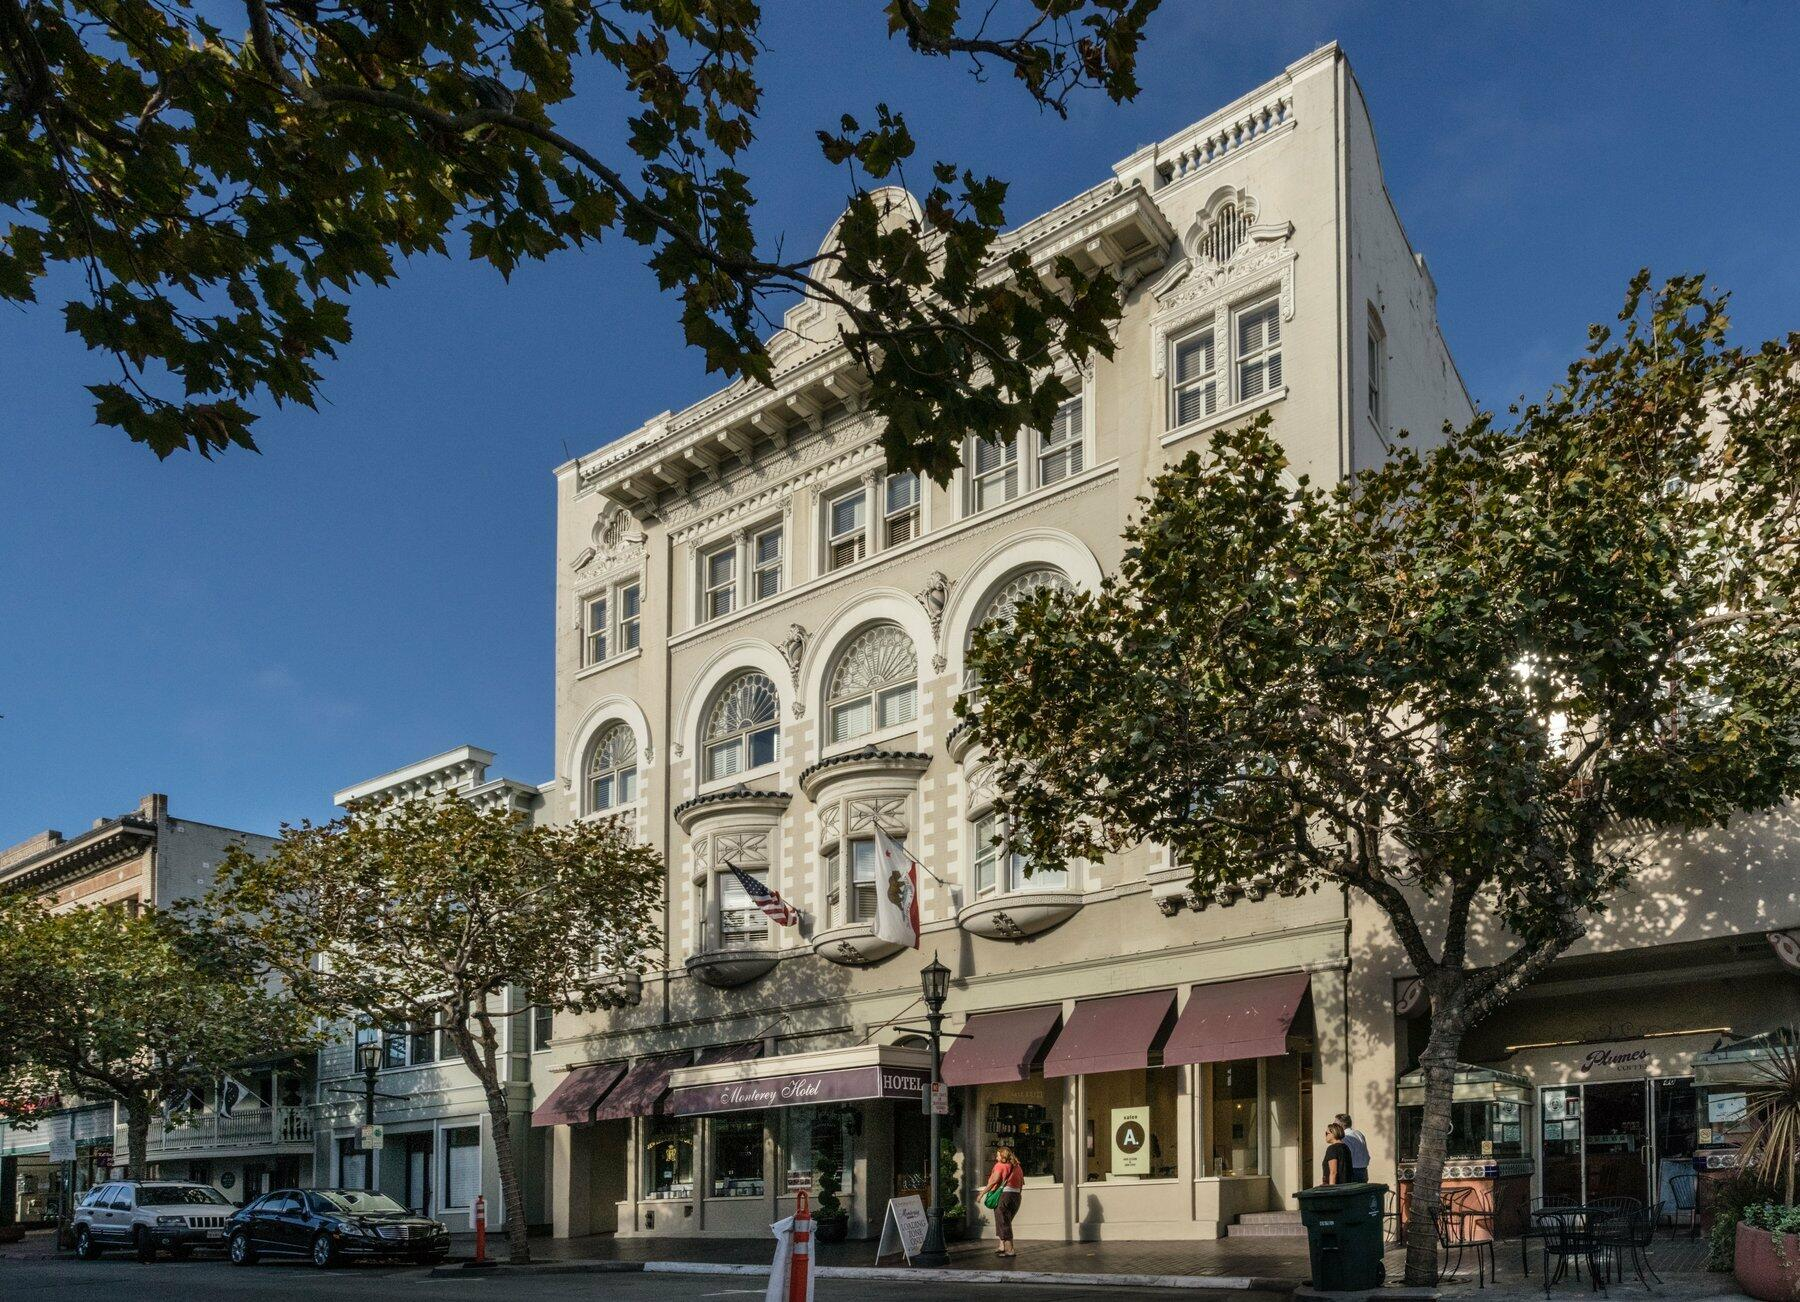 The Monterey Hotel street view